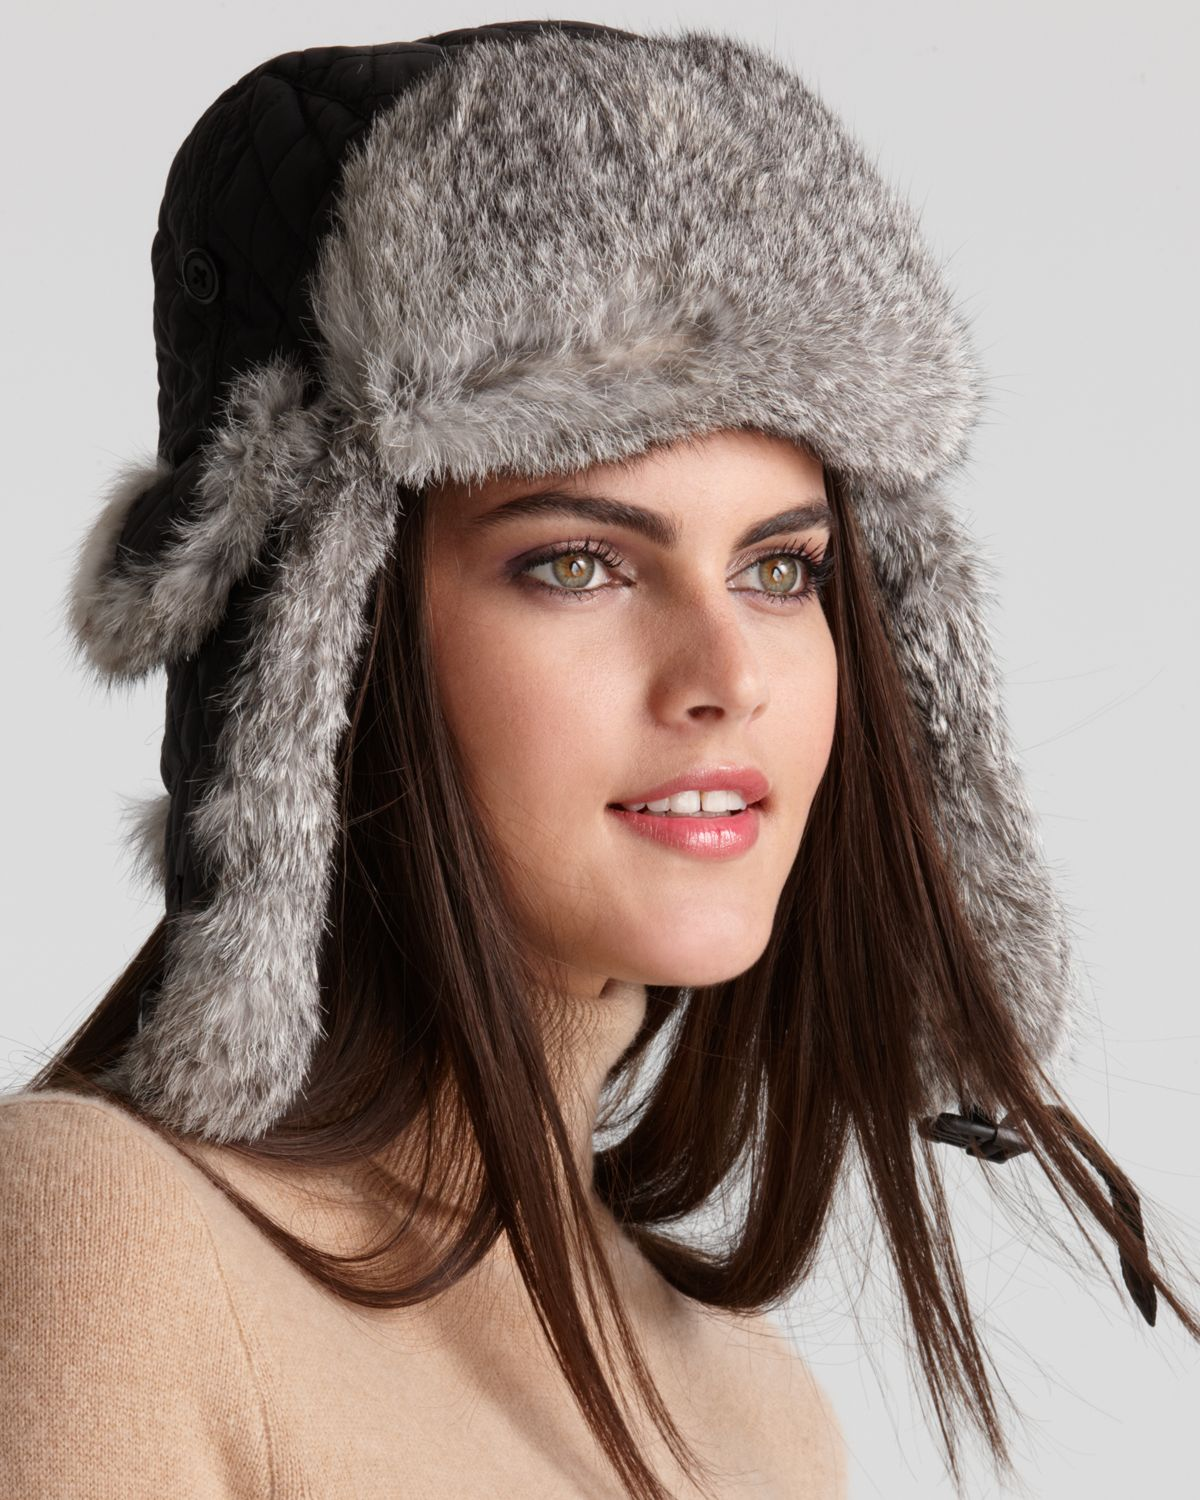 e536e9dff5c Surell Rabbit Fur Aviator Hat in Gray - Lyst